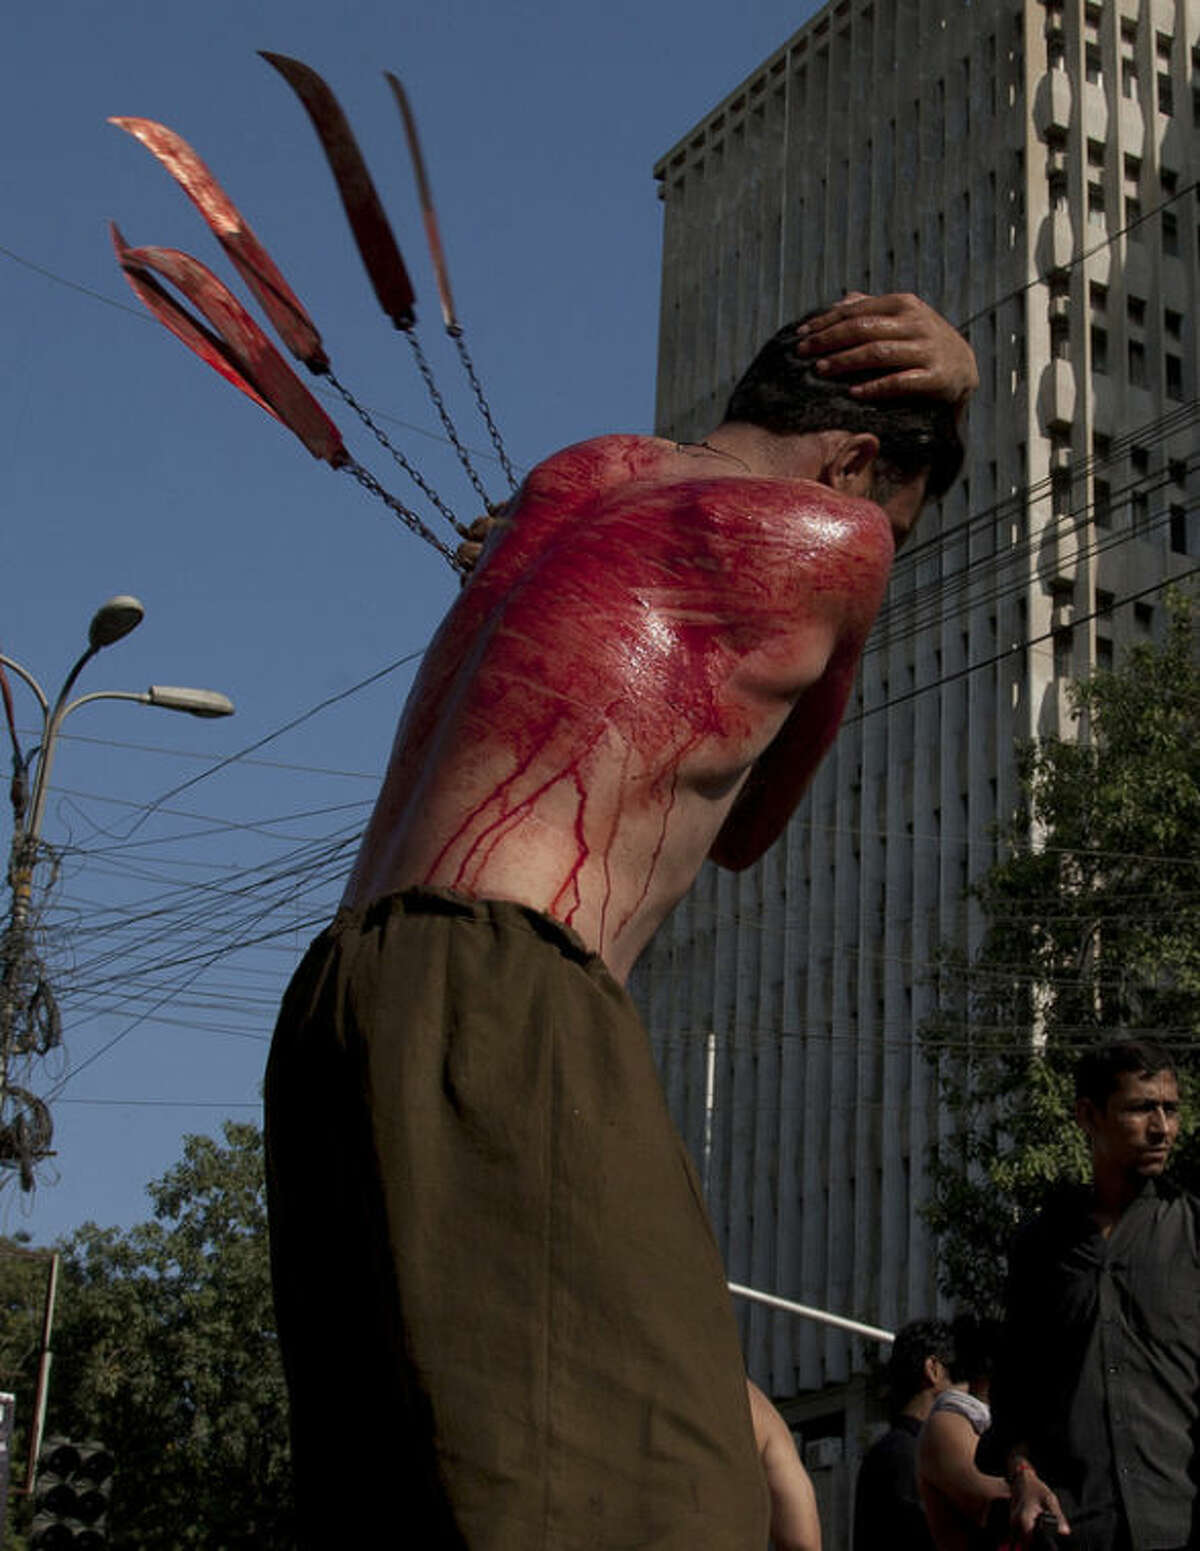 A Pakistani Shiite Muslim beats himself with knives attached to a chain during an Ashoura procession in Karachi, Pakistan, Friday, Nov. 15, 2013. Ashoura commemorates the martyrdom of Imam Hussein, the grandson of Prophet Muhammad at the Battle of Karbala, Iraq, in the year 680 A.D. (AP Photo/Shakil Adil)